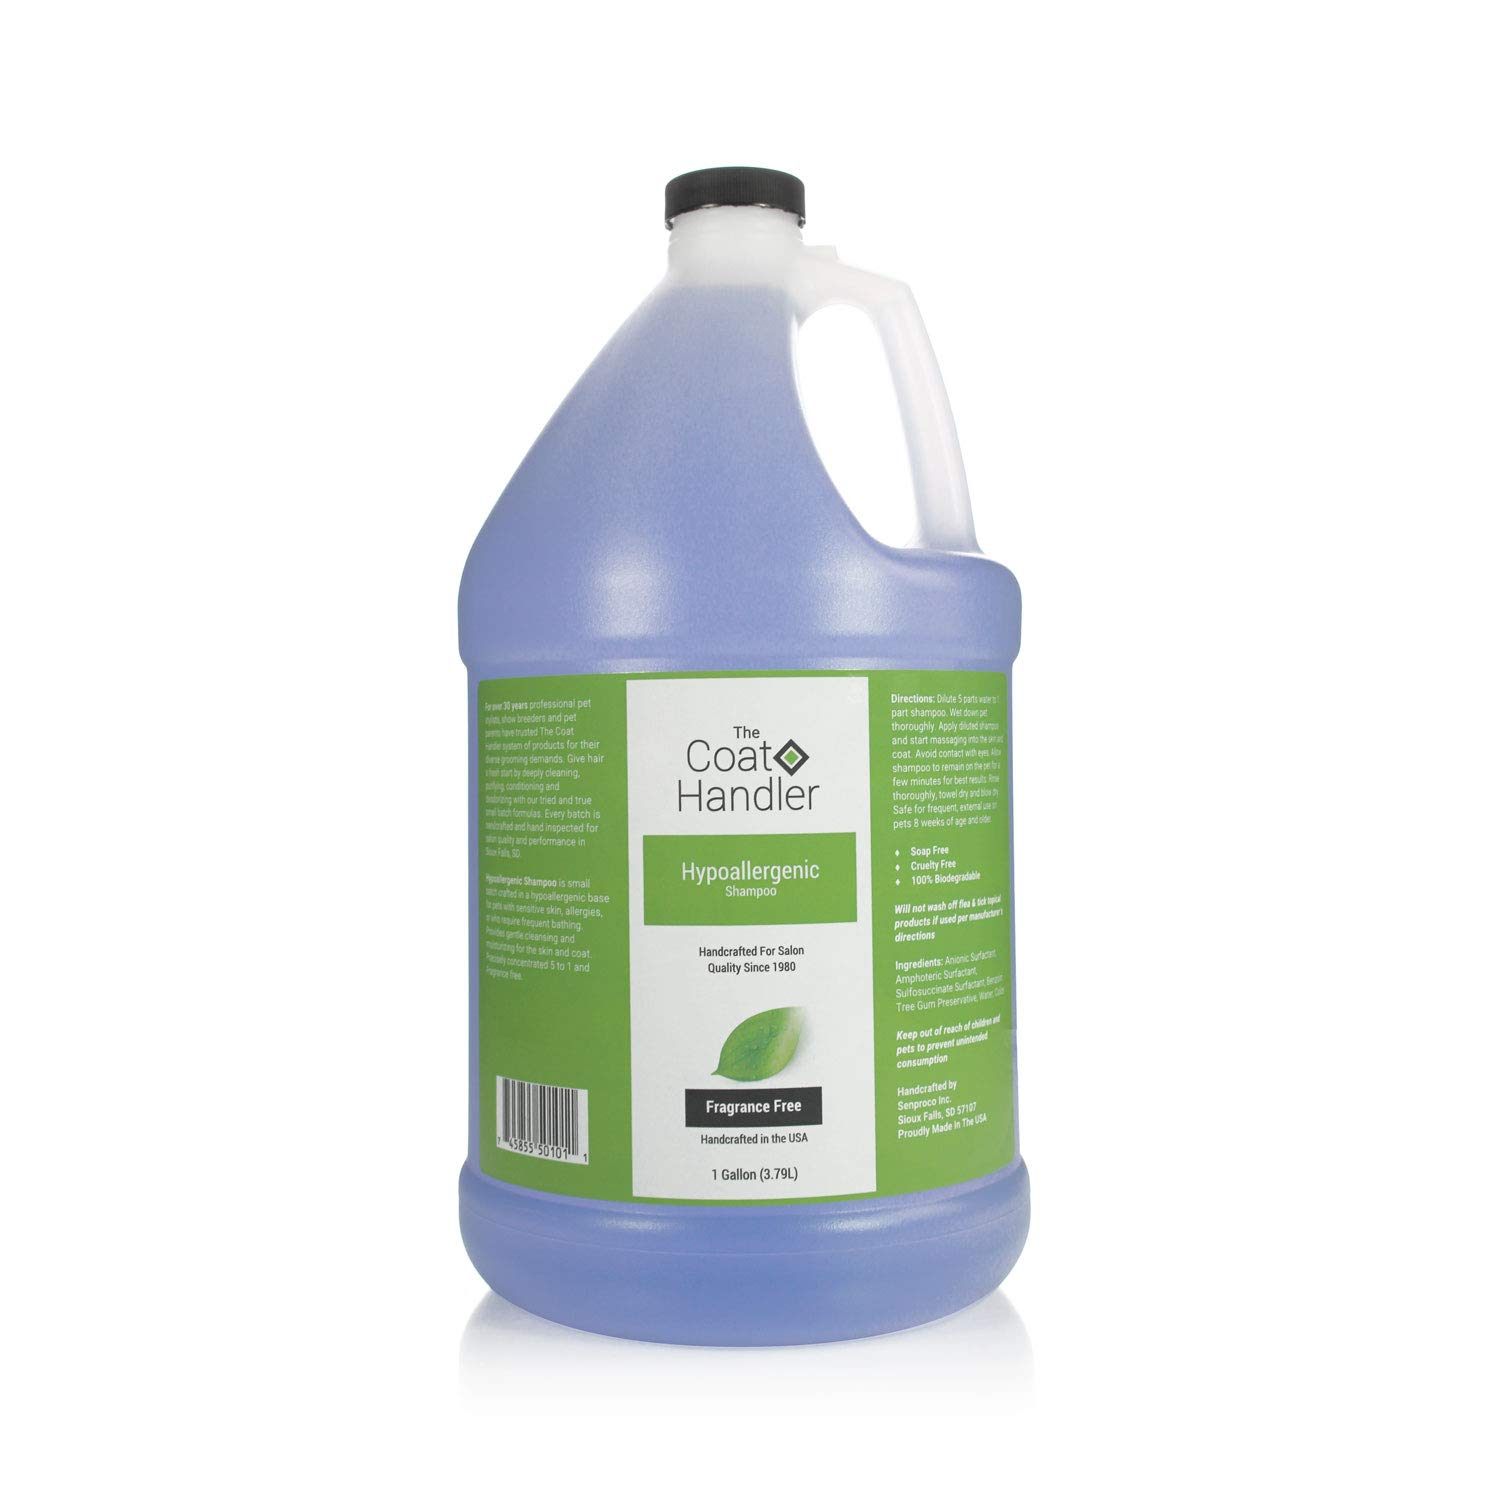 Coat Handler The Hypoallergenic Shampoo 1 Gallon